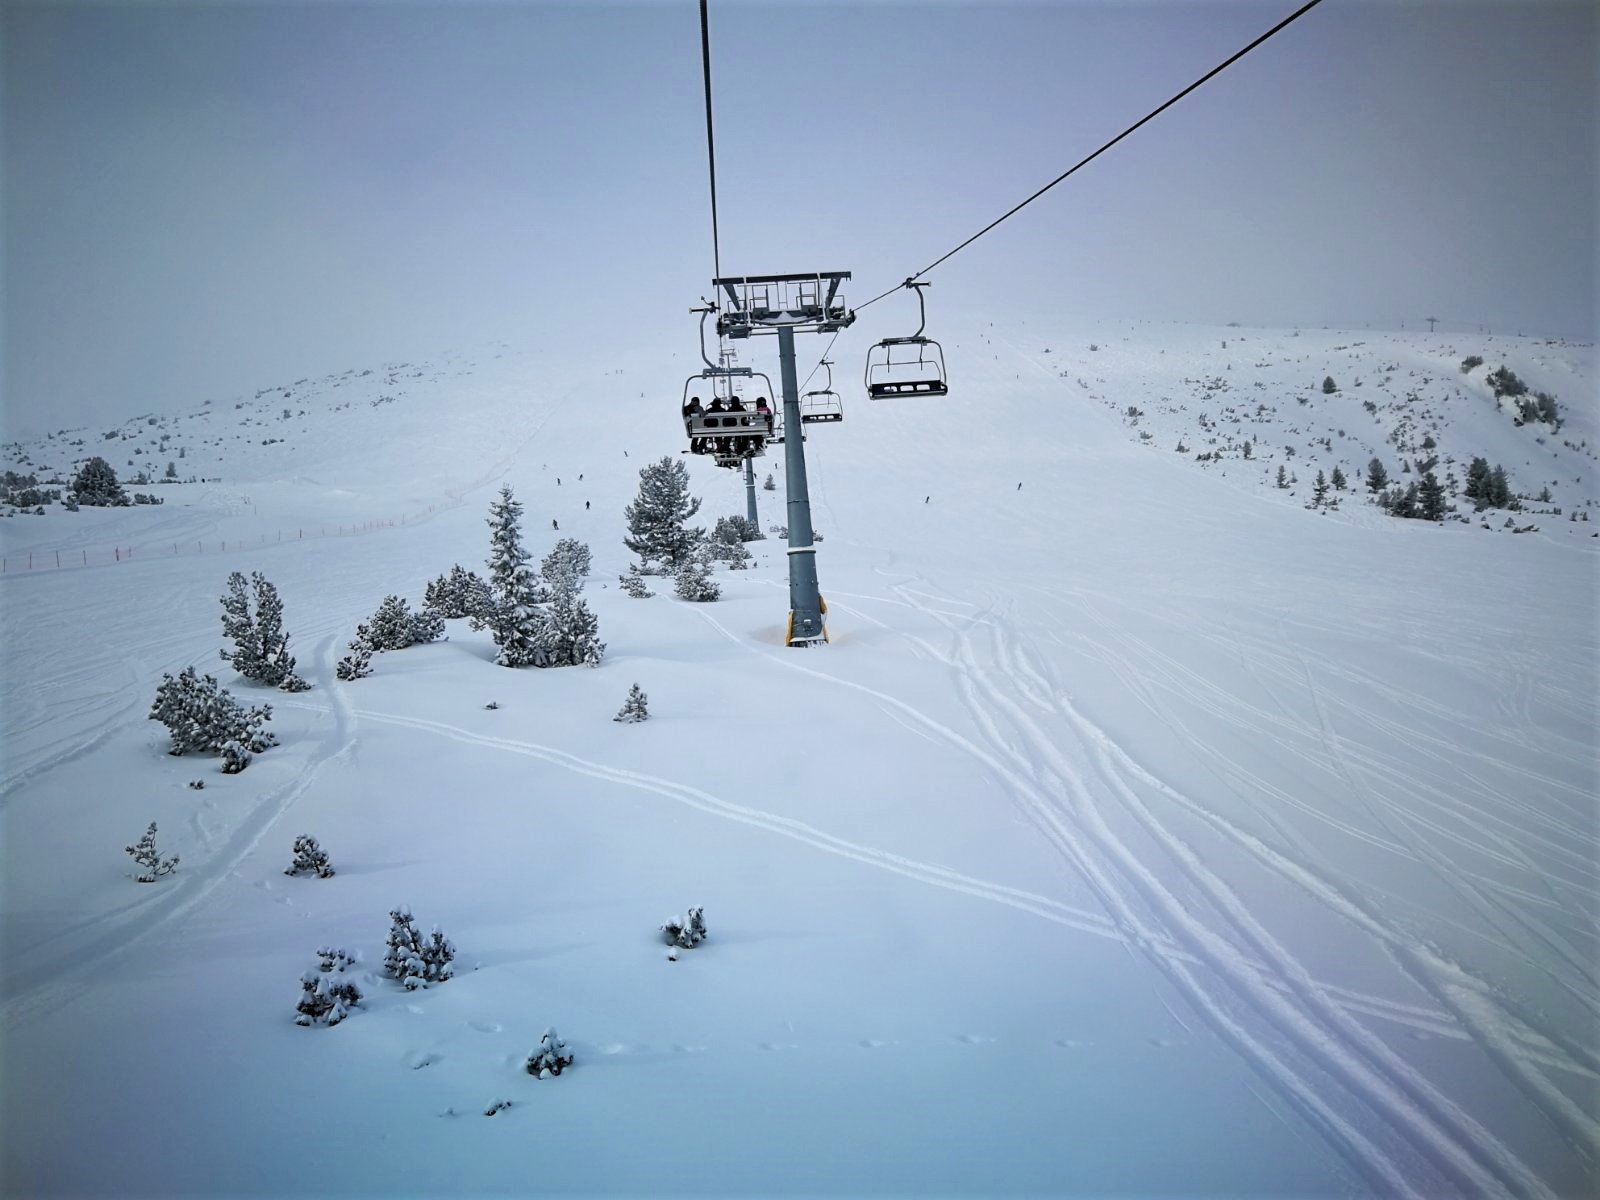 Snow Conditions: On-piste